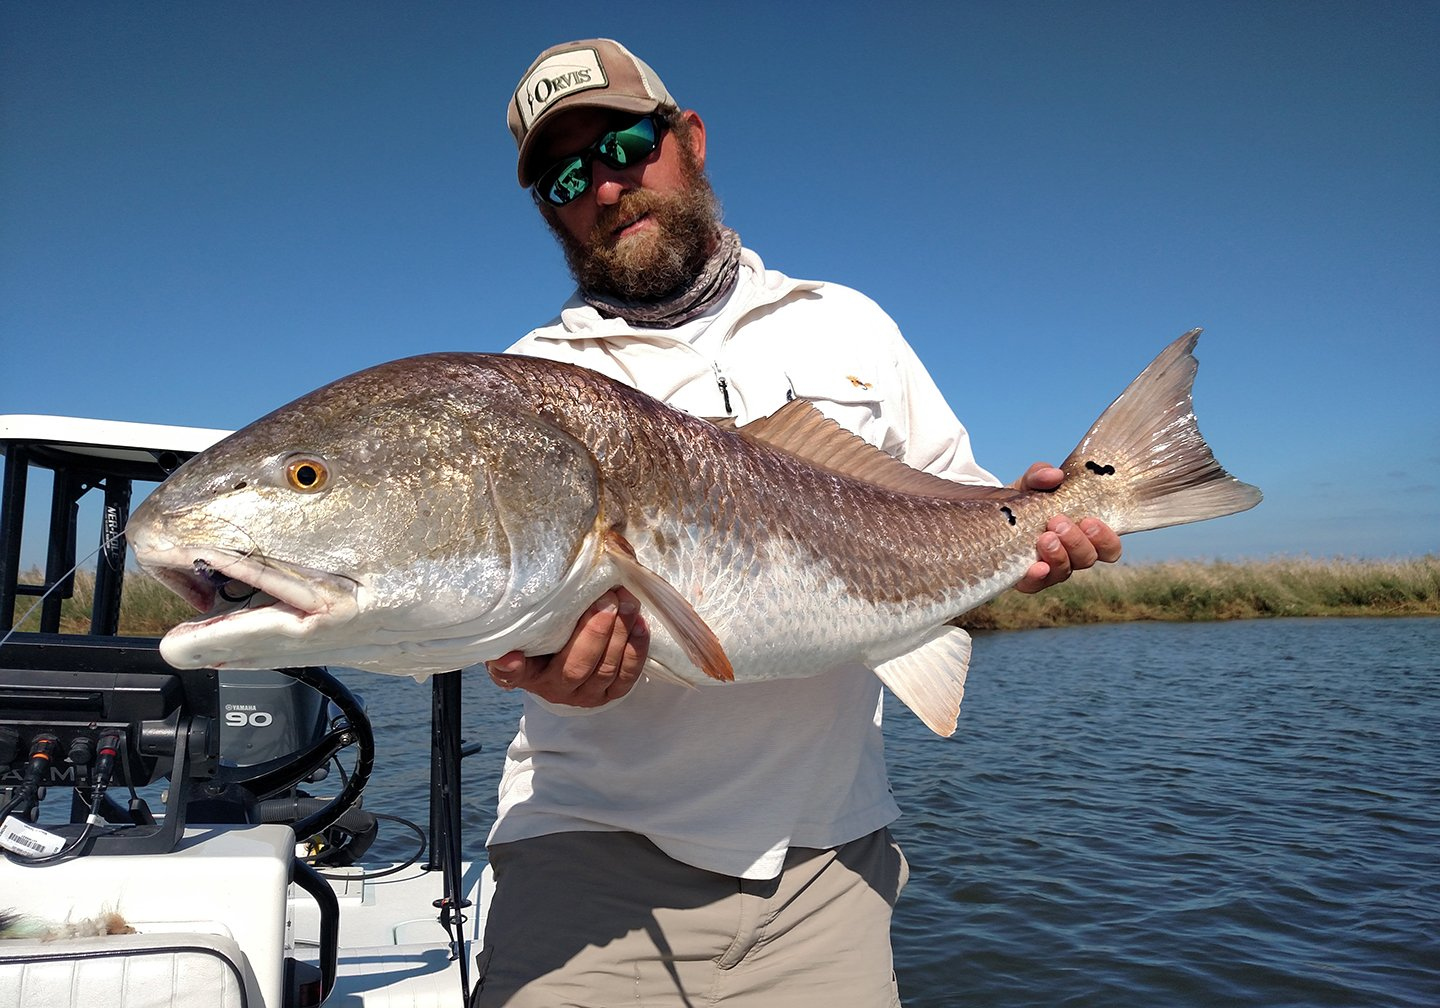 An angler on a flats fishing boat holding a large Bull Redfish with water and sky behind him.